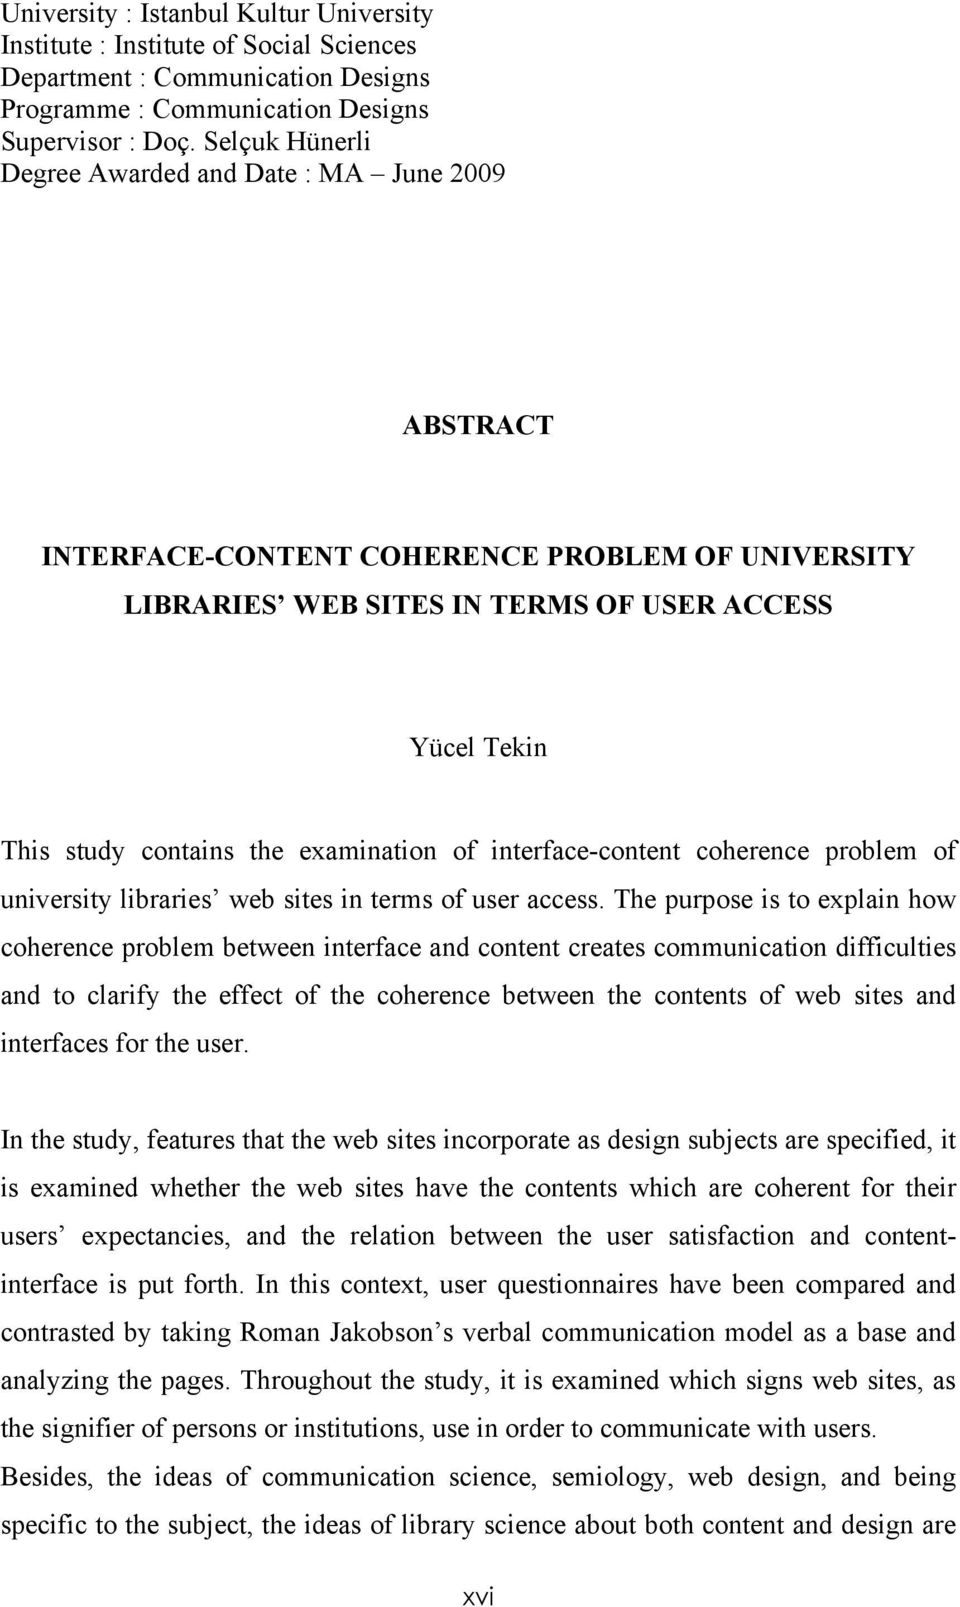 examination of interface-content coherence problem of university libraries web sites in terms of user access.